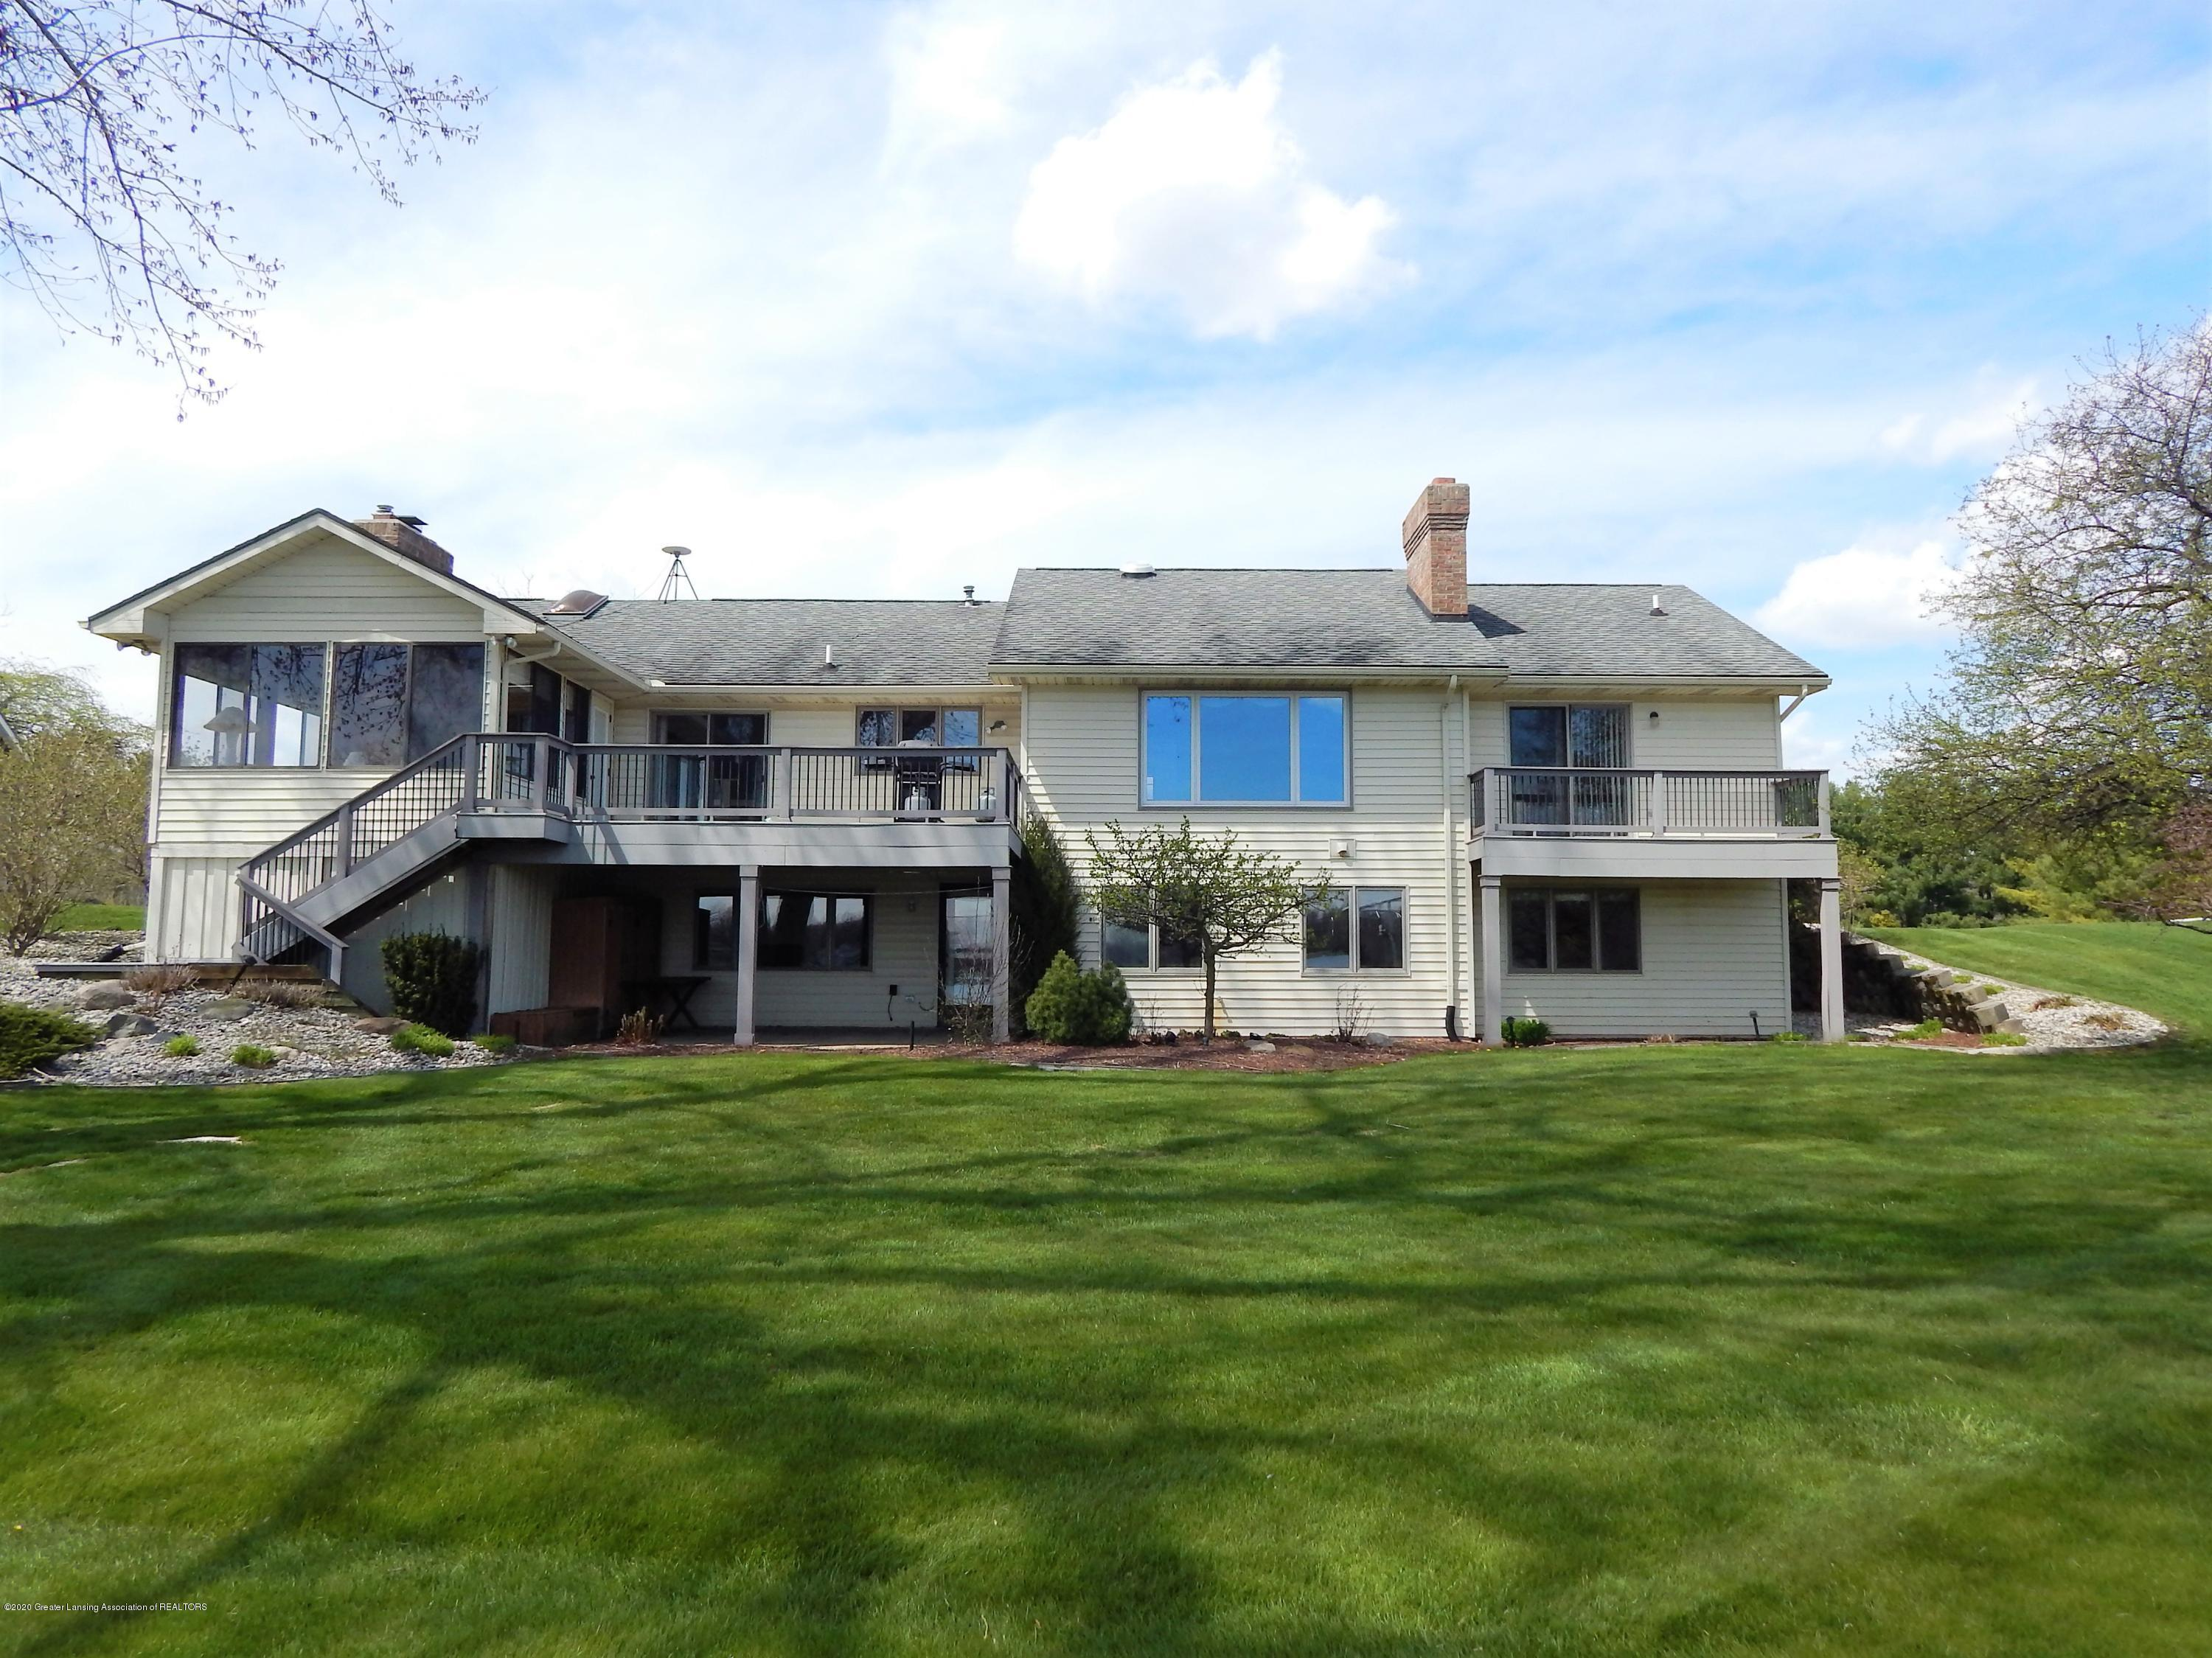 9283 W Scenic Lake Dr - Back Exterior - 50